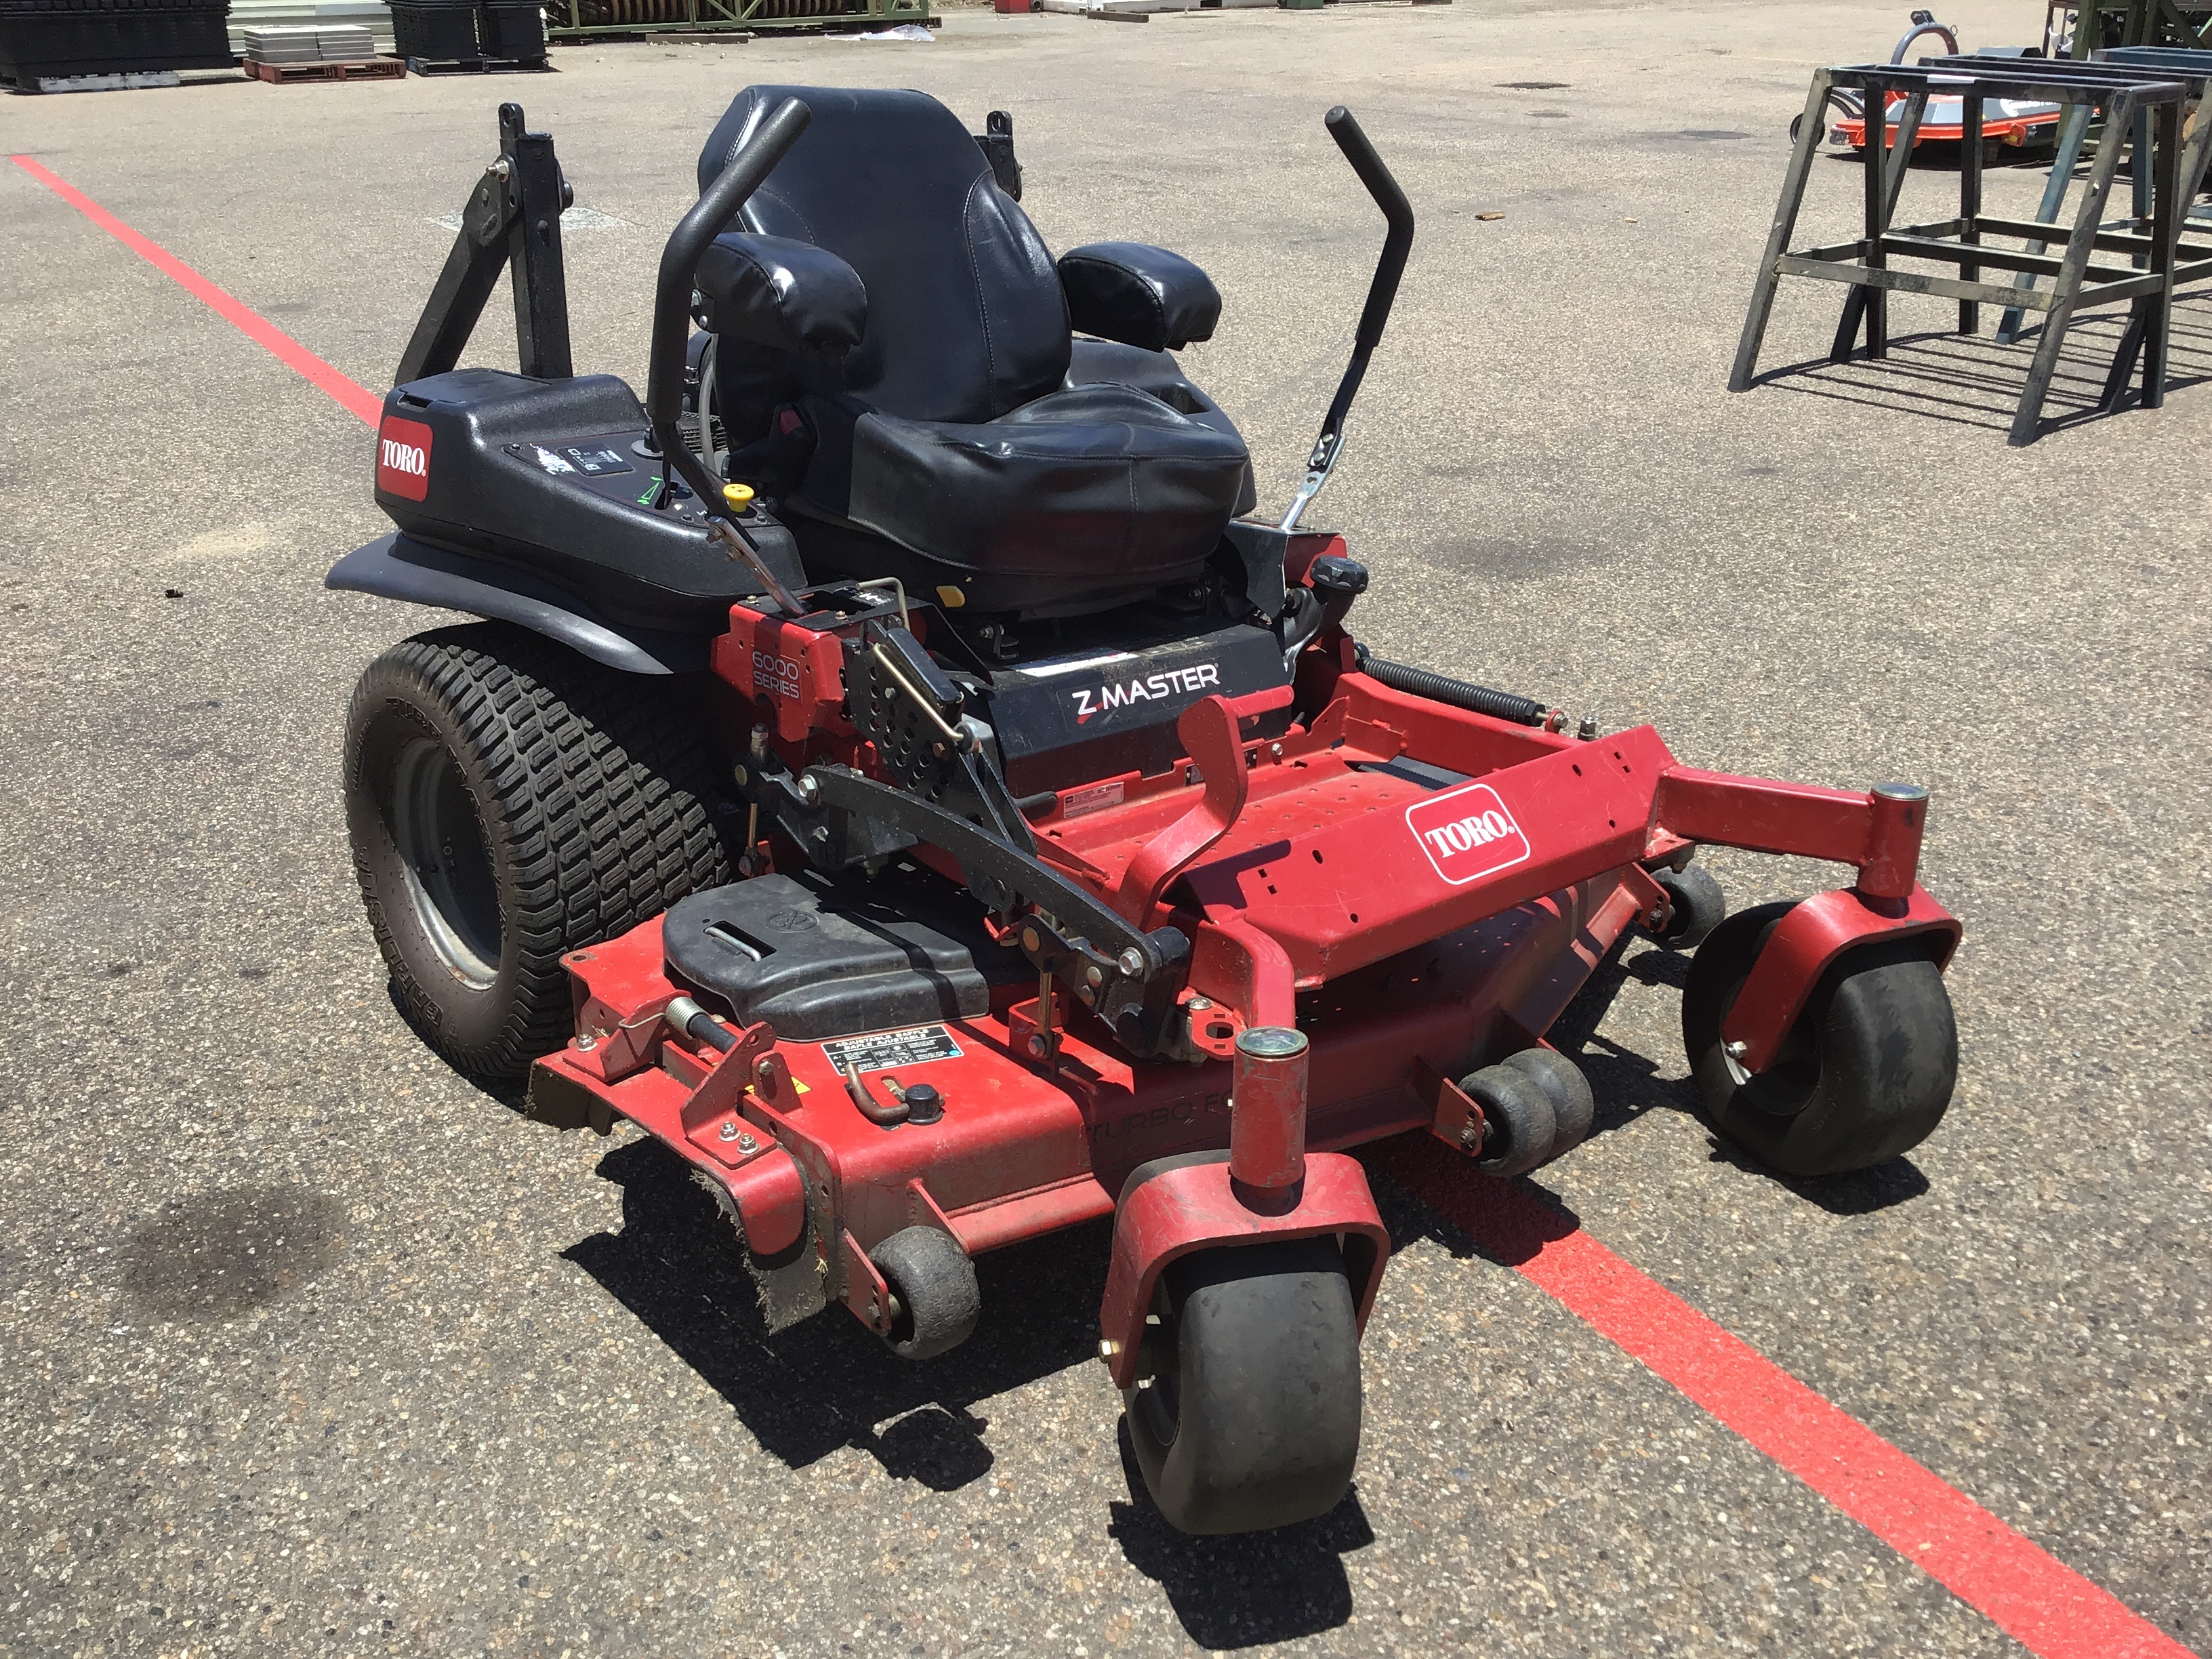 Toro 74960 Ride On Lawn Mower